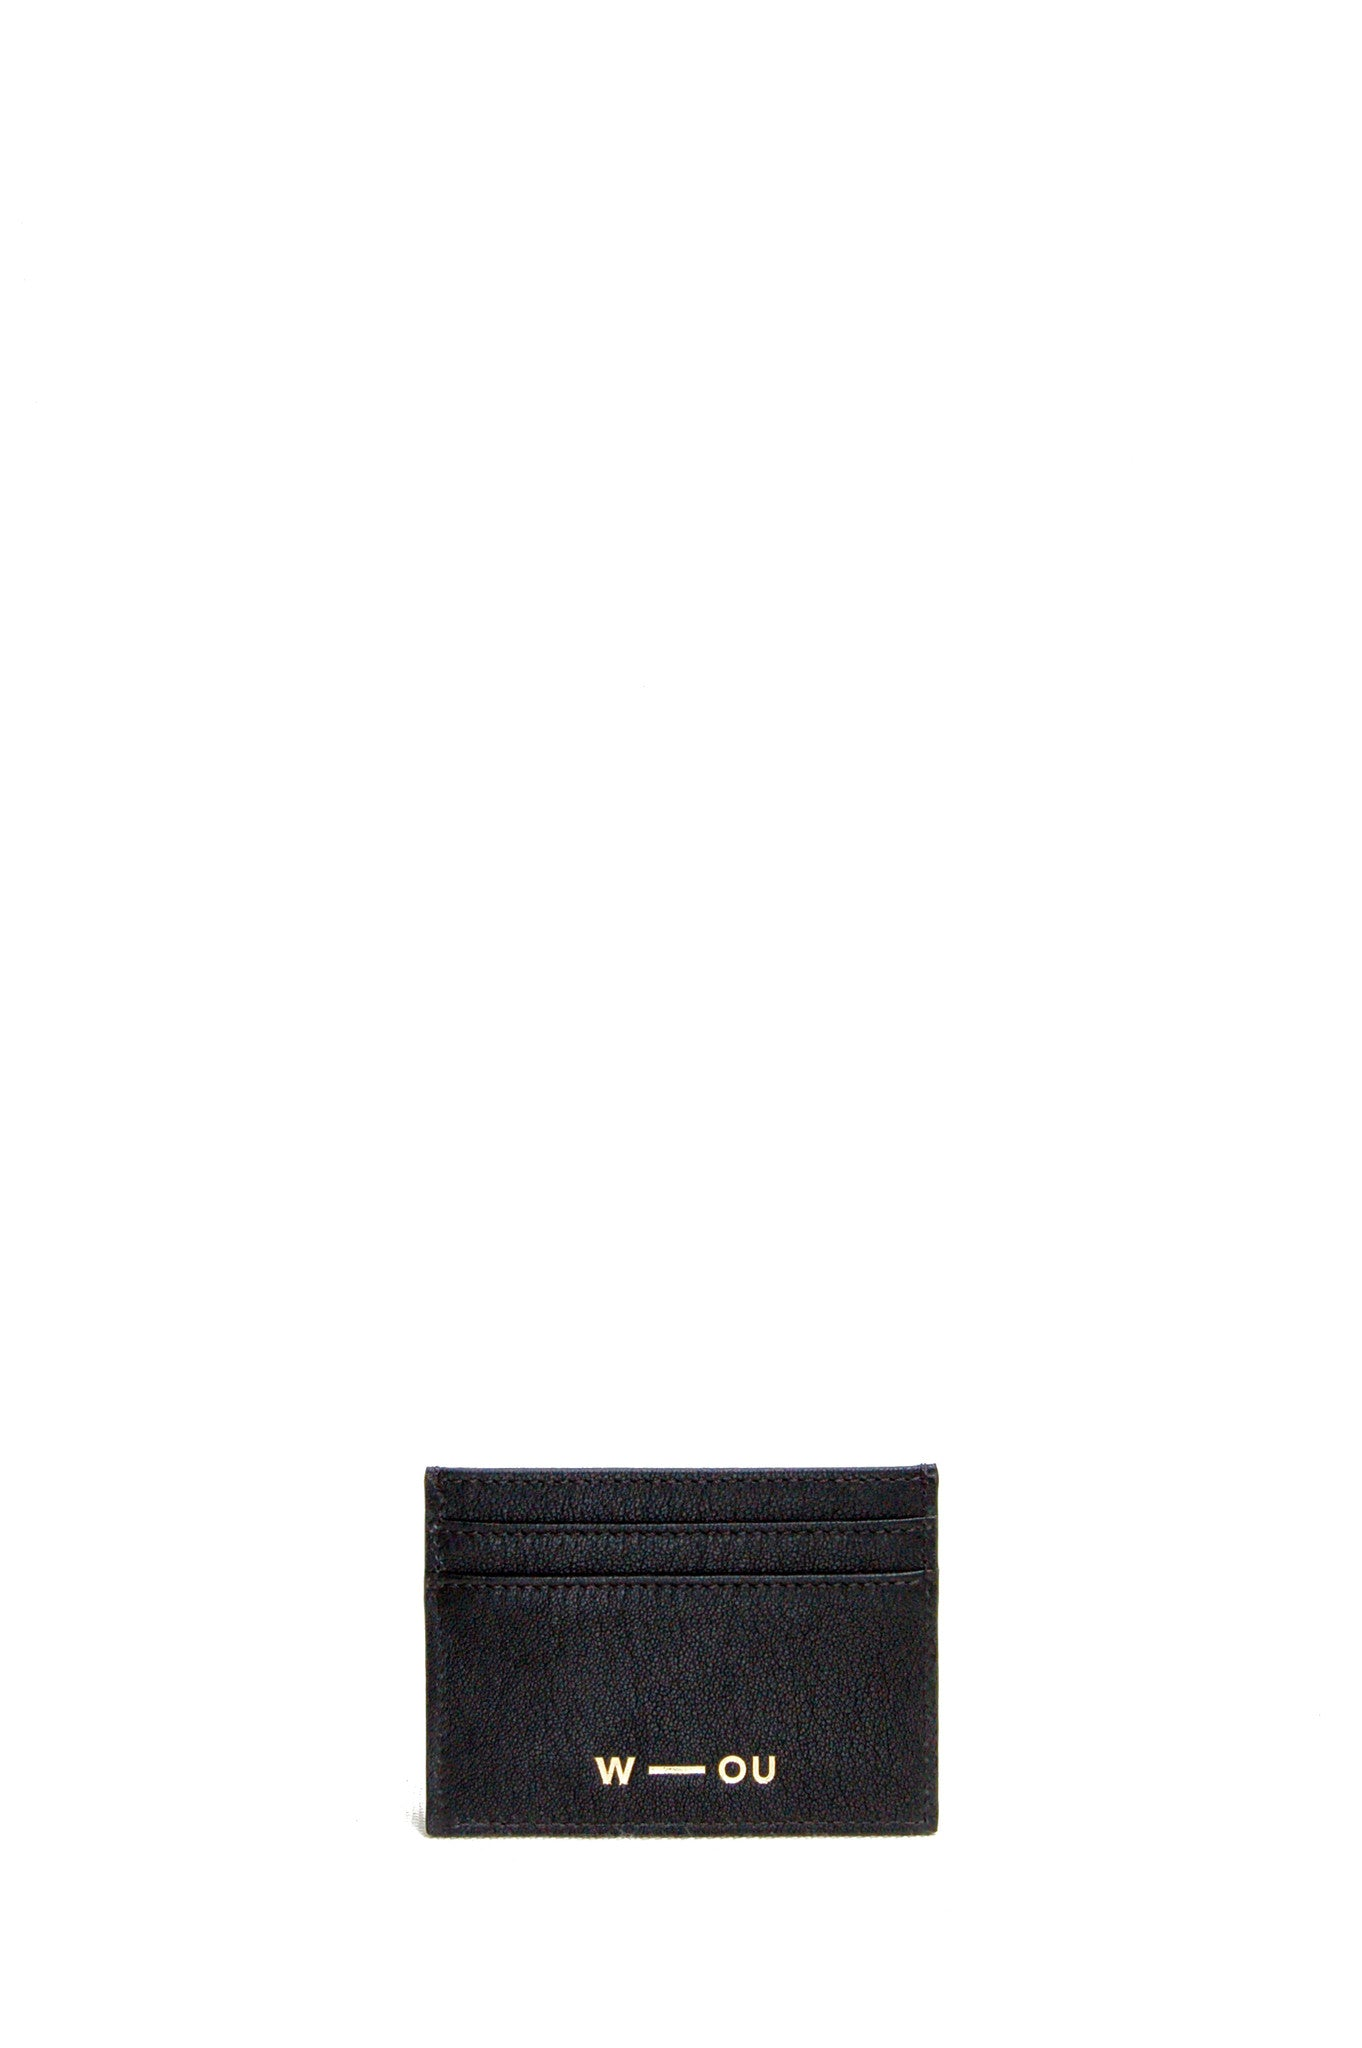 Wendee Ou: Gia cardholder black rainbow   Accessories > Wallets,Accessories -  Hiphunters Shop